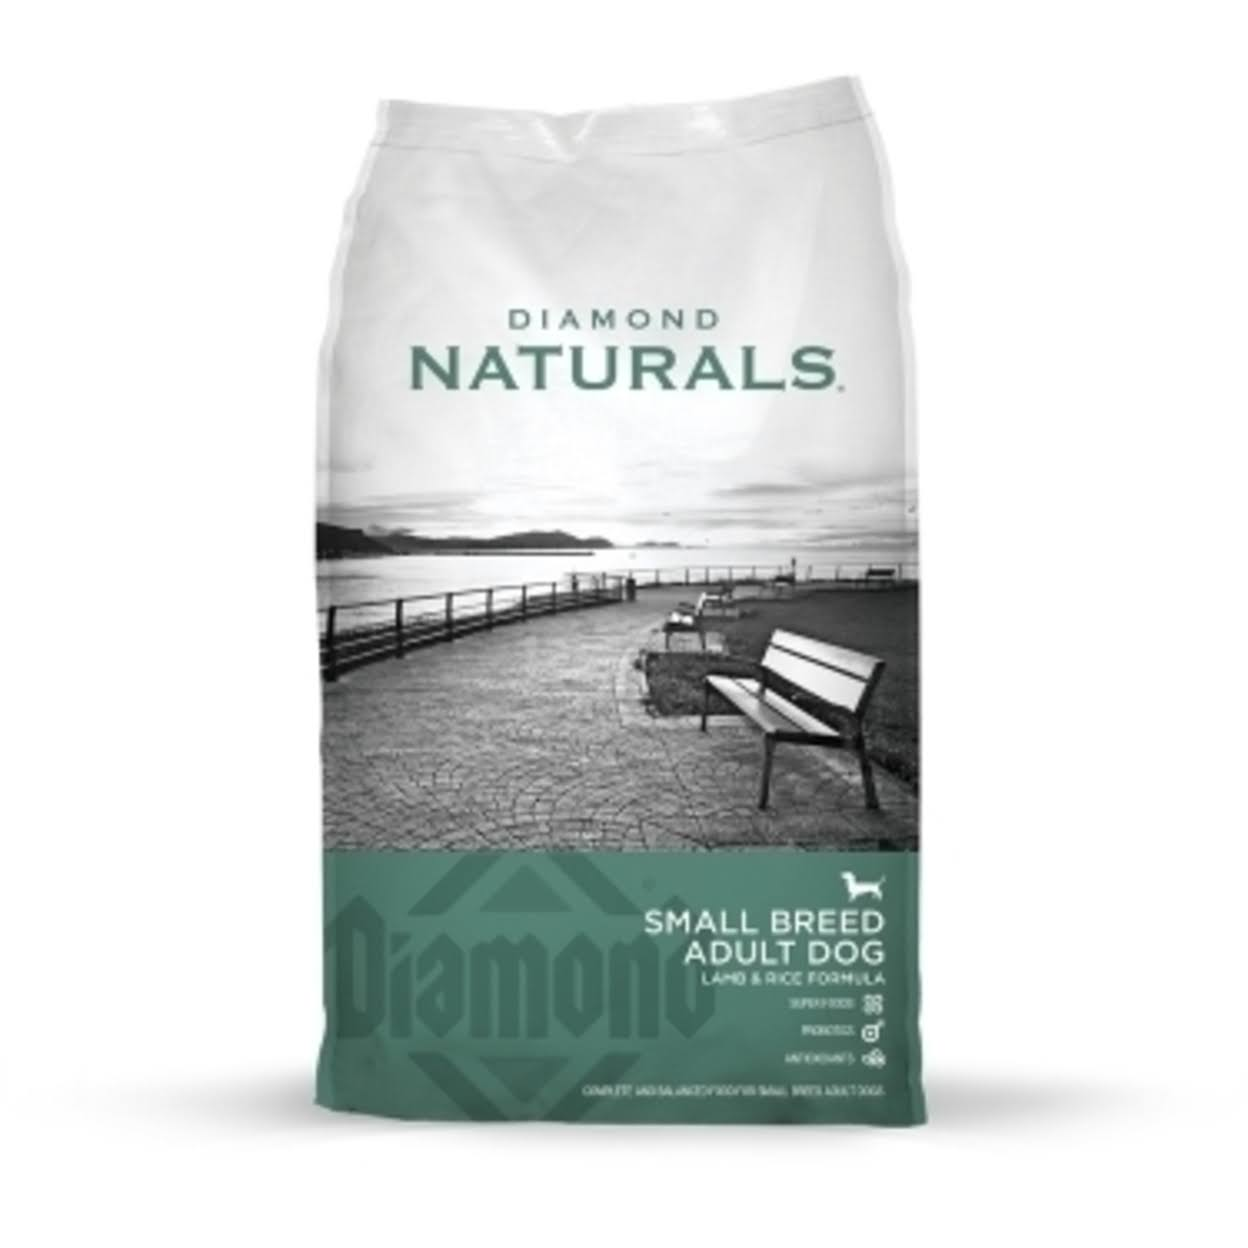 Diamond Naturals Dry Food for Small Breed Adult Dogs - Lamb and Rice Formula